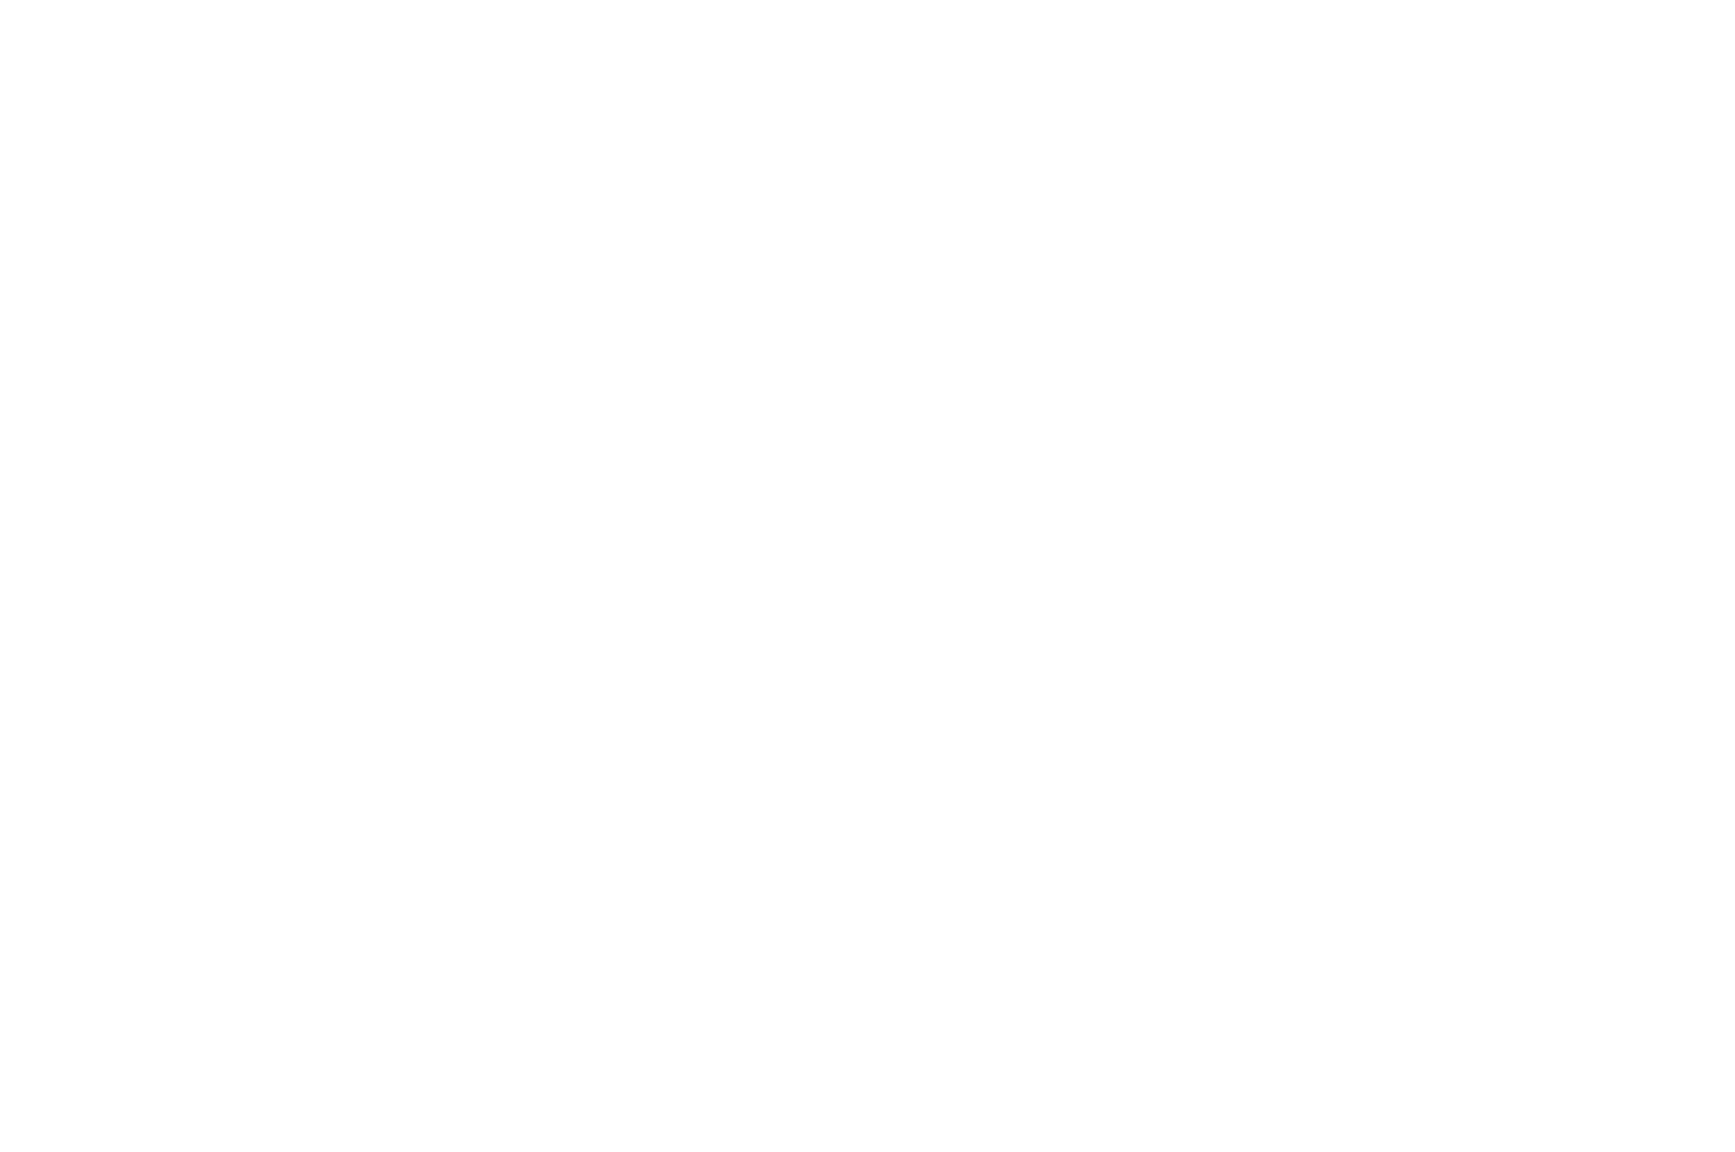 MIX MXICO Film Festival - 2019.png